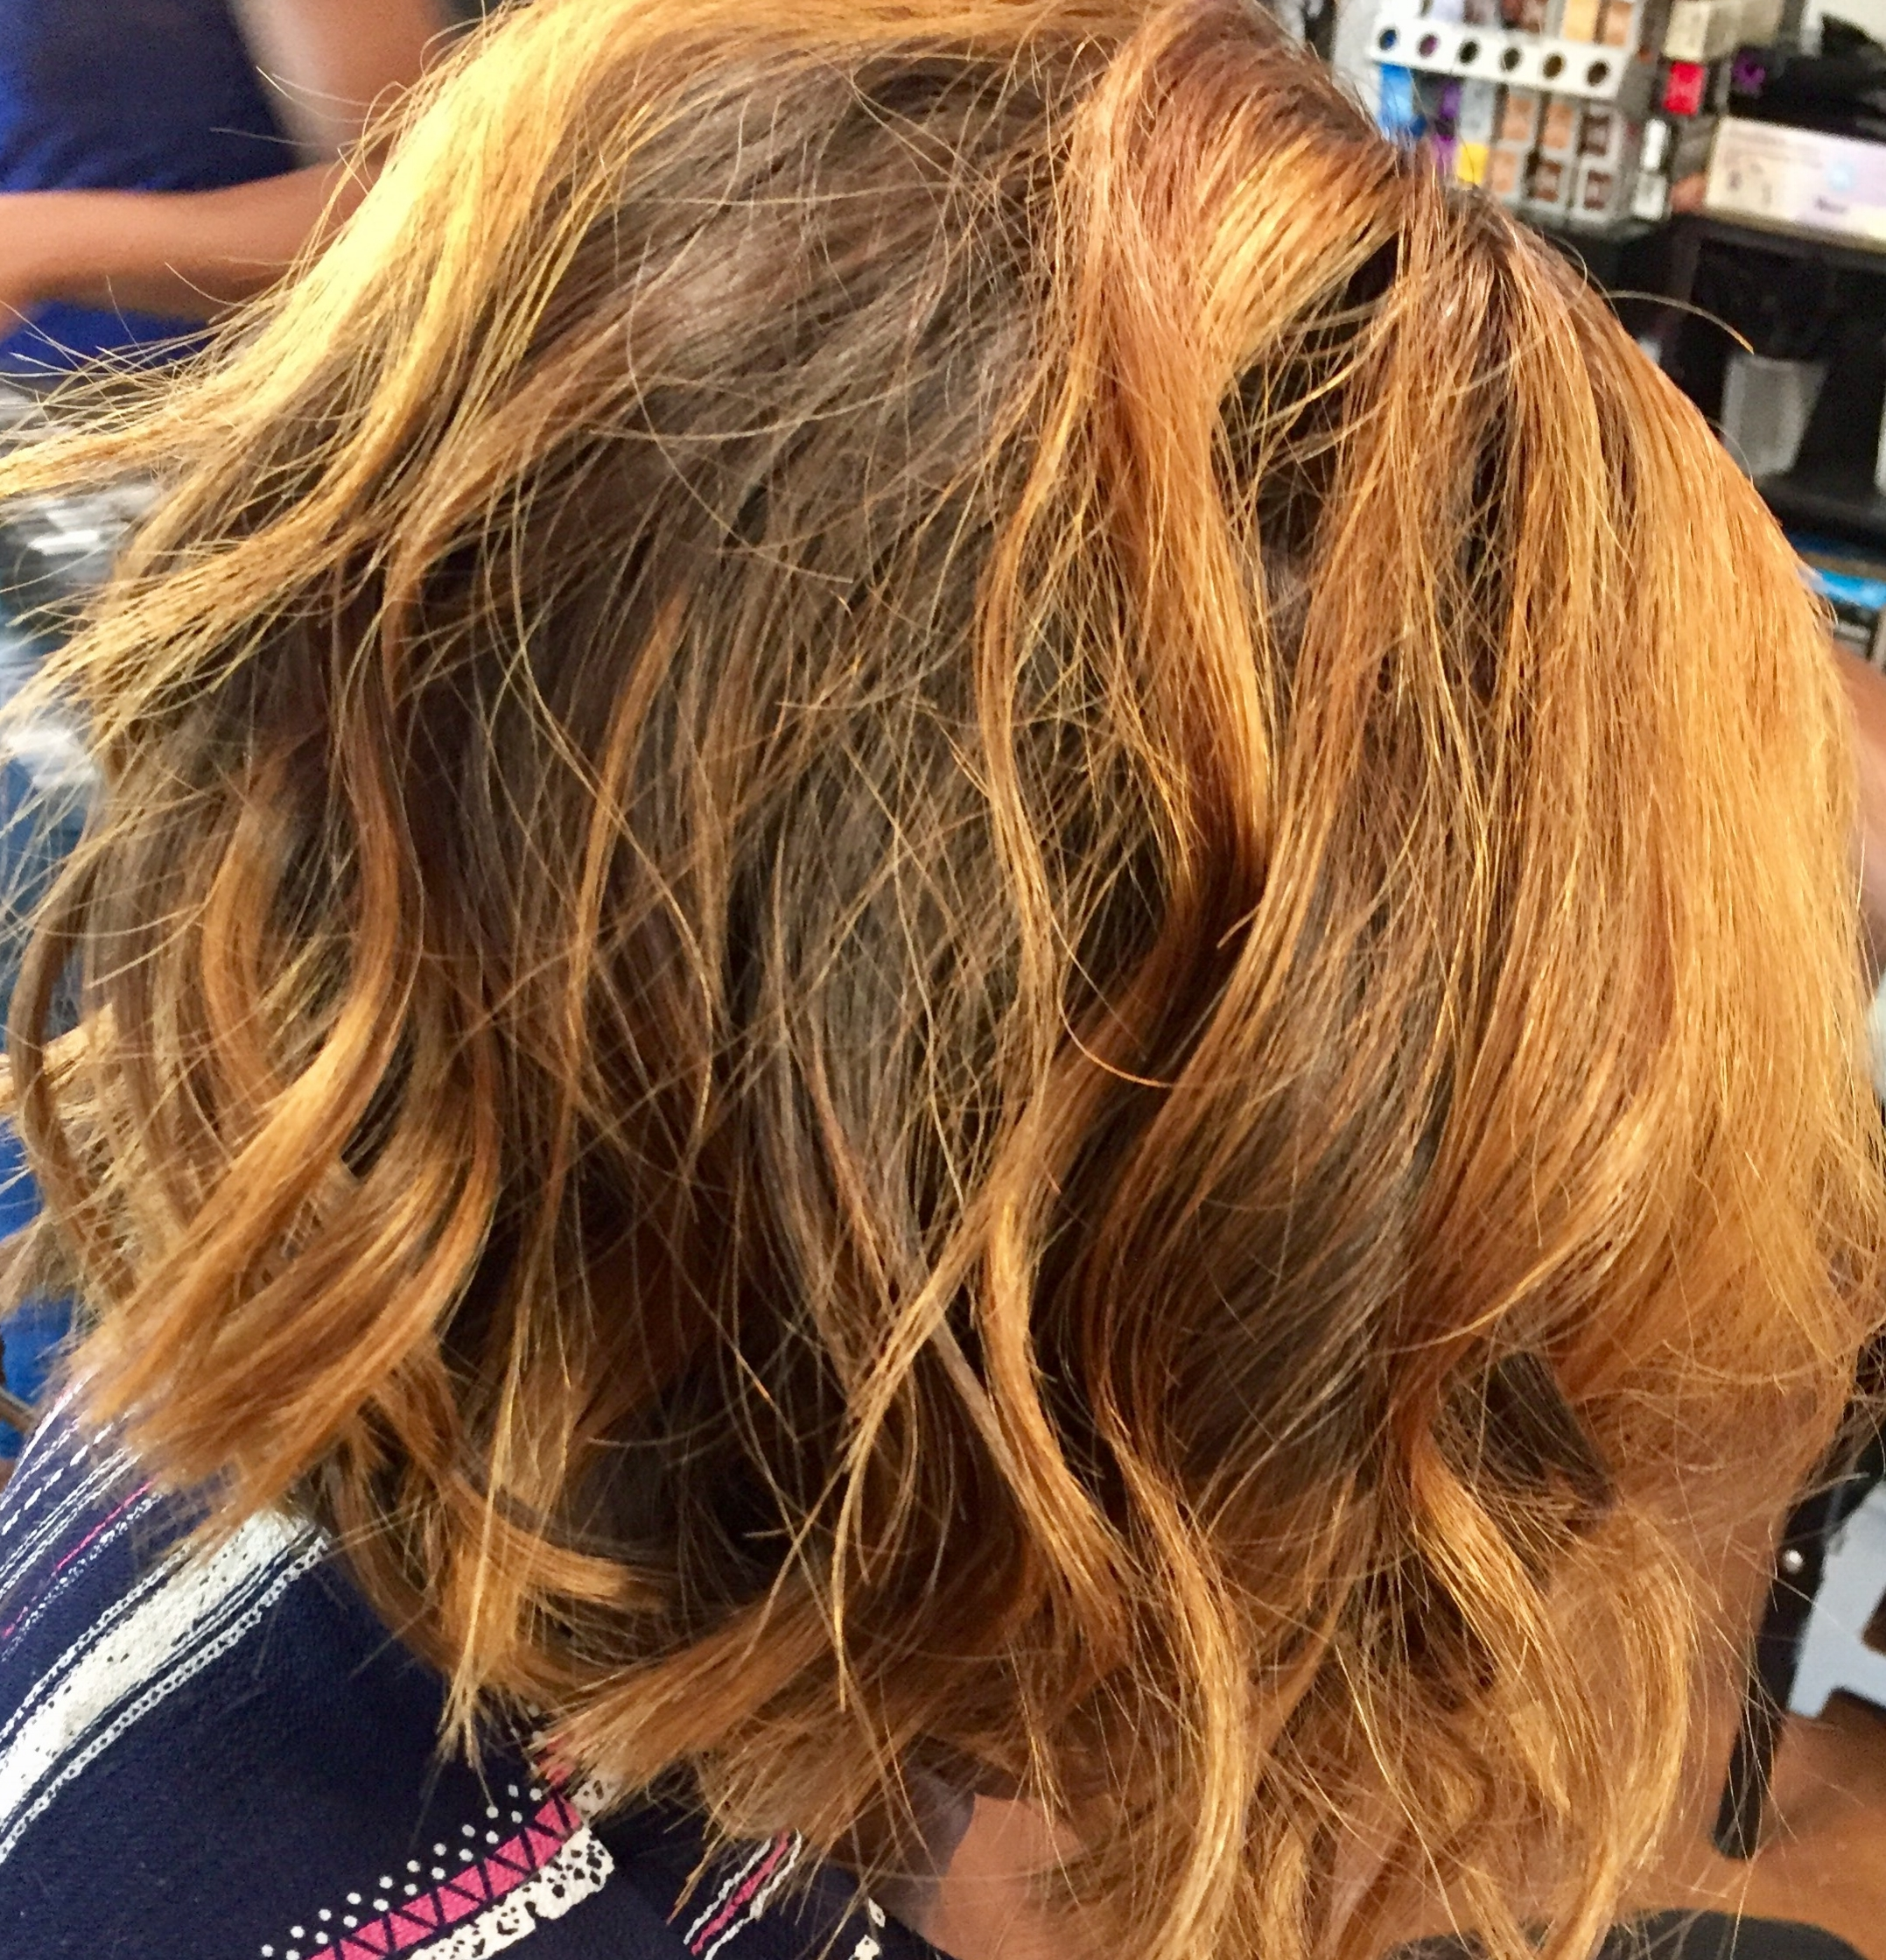 Hair Artistry... - Natural Styles to Extensions/Wigs, Color to Smoothing Treatments... Healthy Hair is my number one priority!